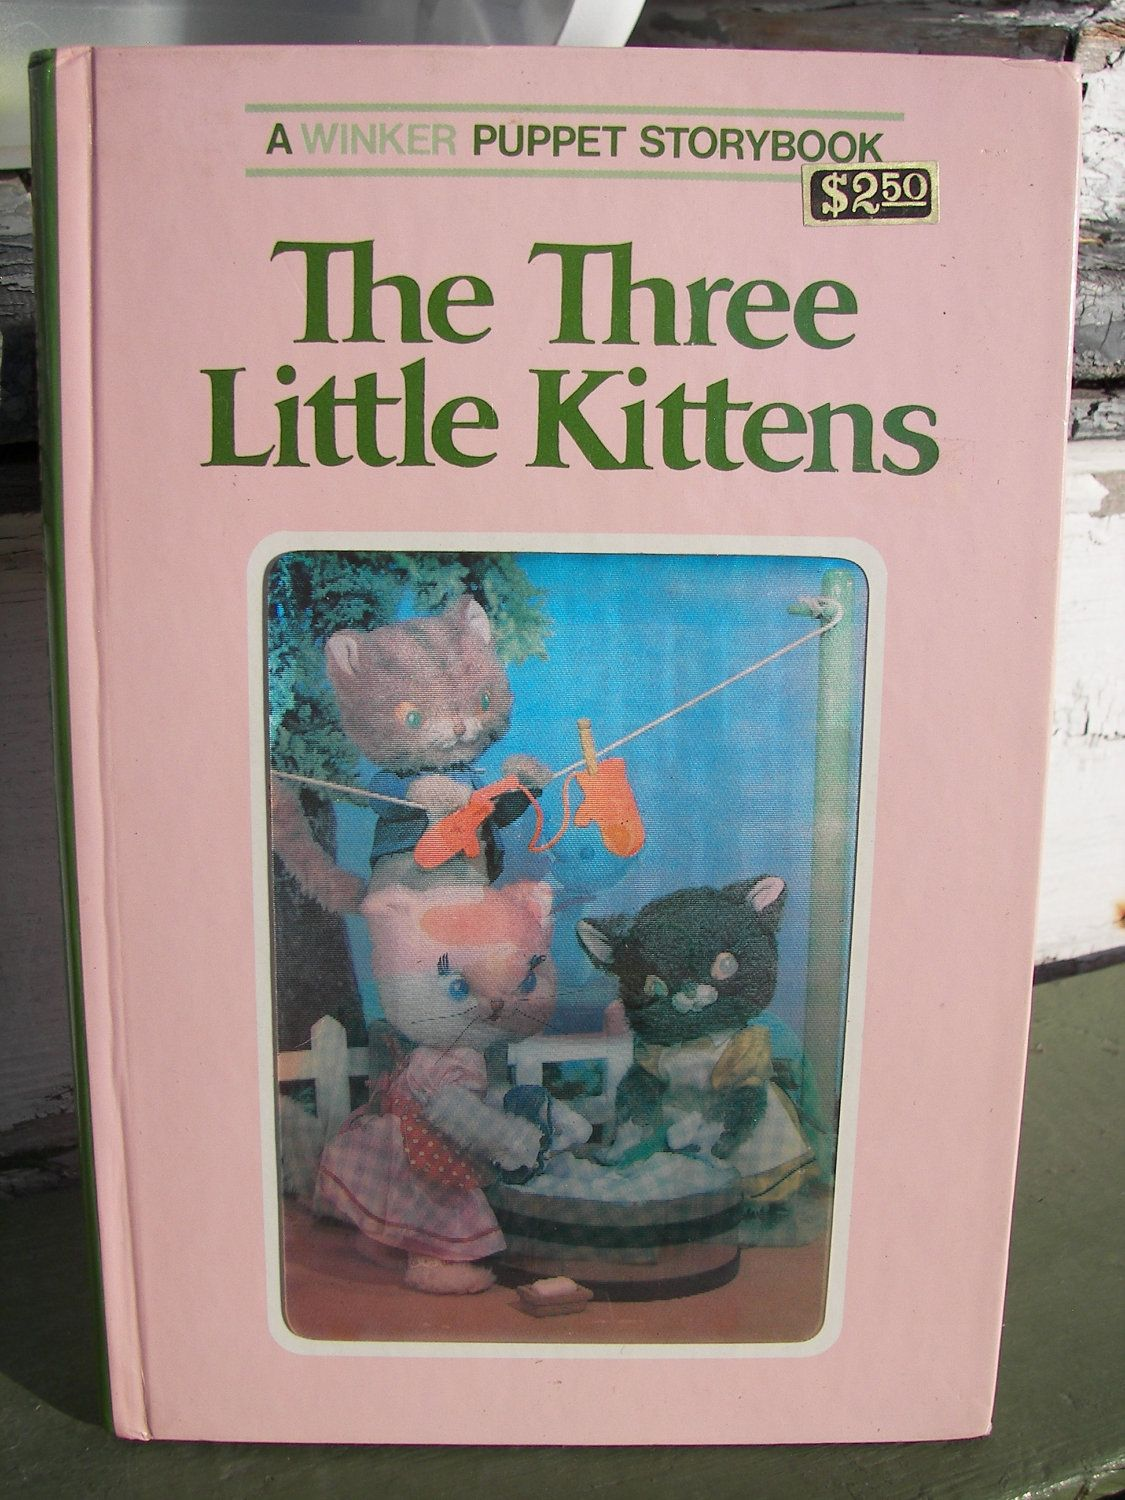 The Three Little Kittens A Winker Puppet Storybook 1968 3d Lenticular Hologram Little Kittens Vintage Toys Old Toys